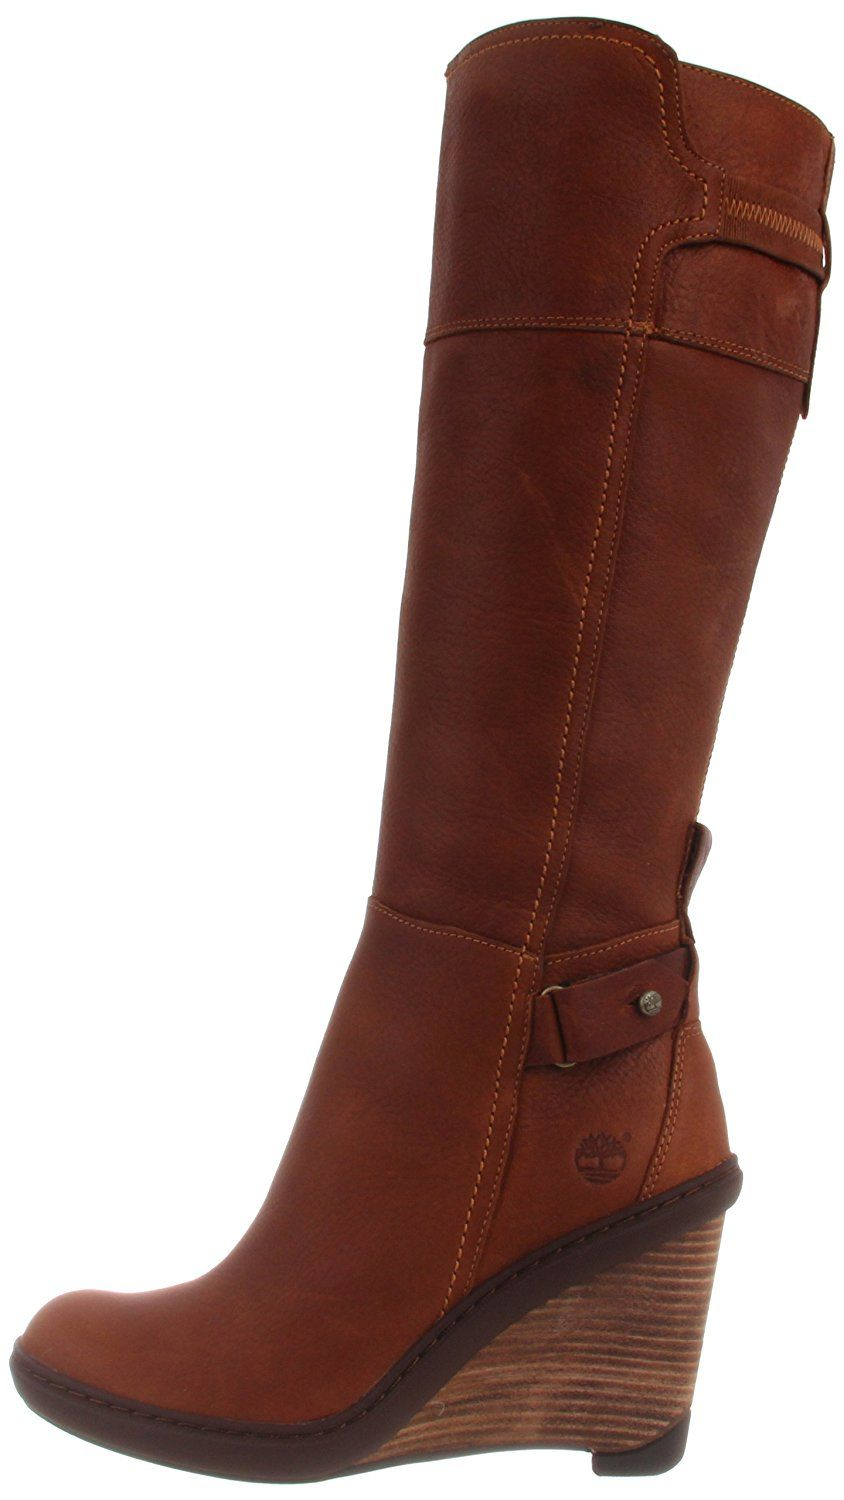 Timberland Stratham Heights Wedge Tall Boot - Women s Medium Brown 5.5 Wide 6aca81ba3b9f